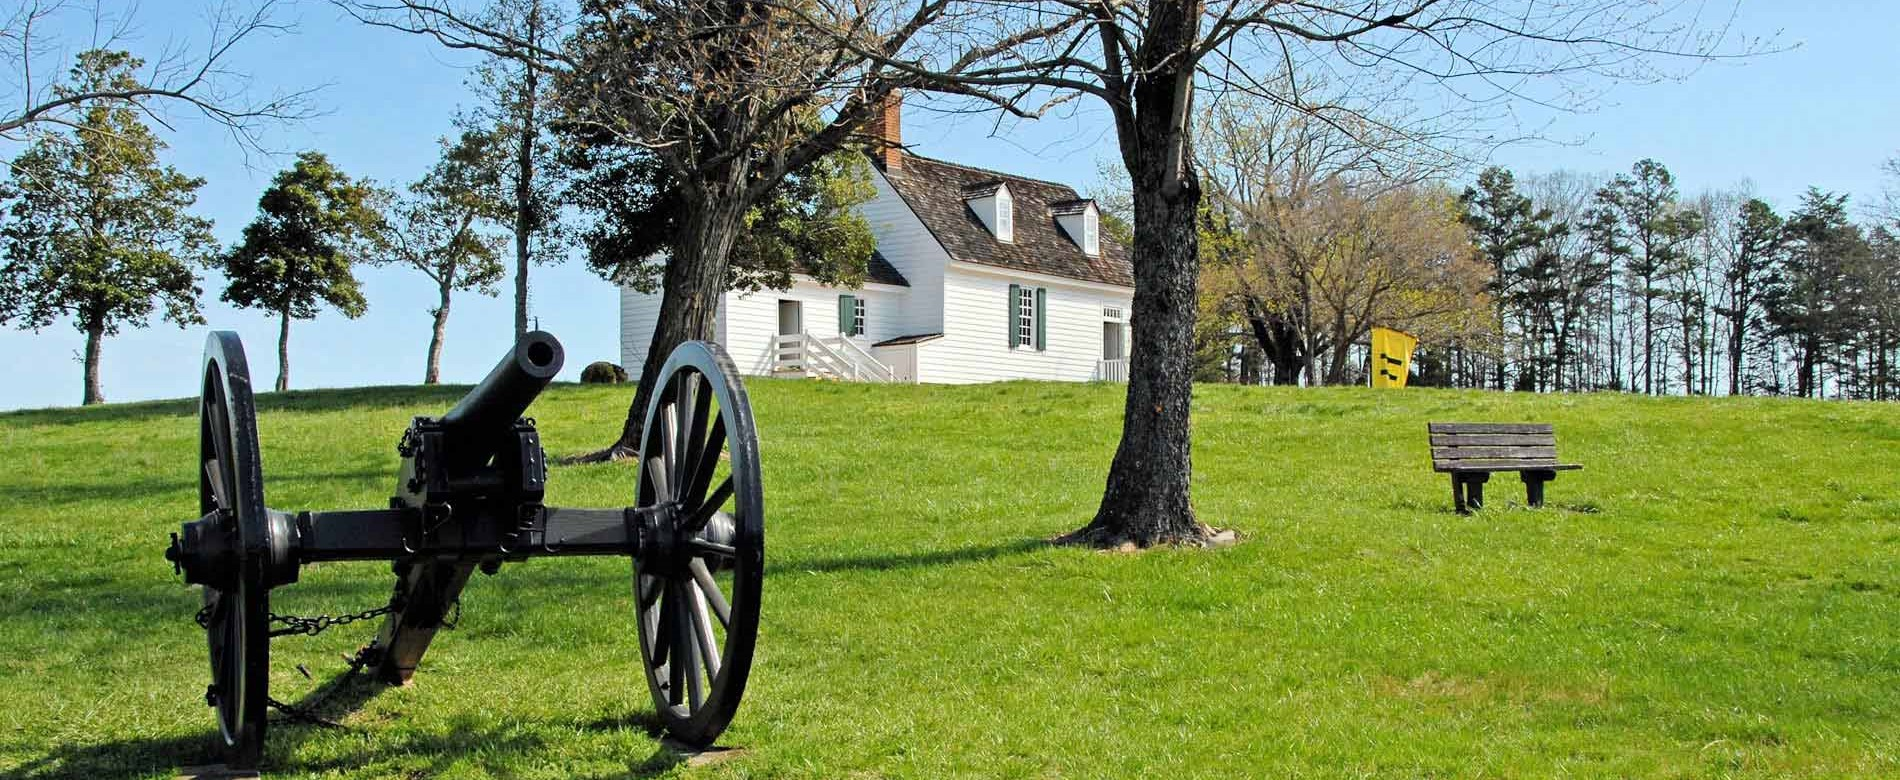 Sailor's Creek Battlefield Historical State Park